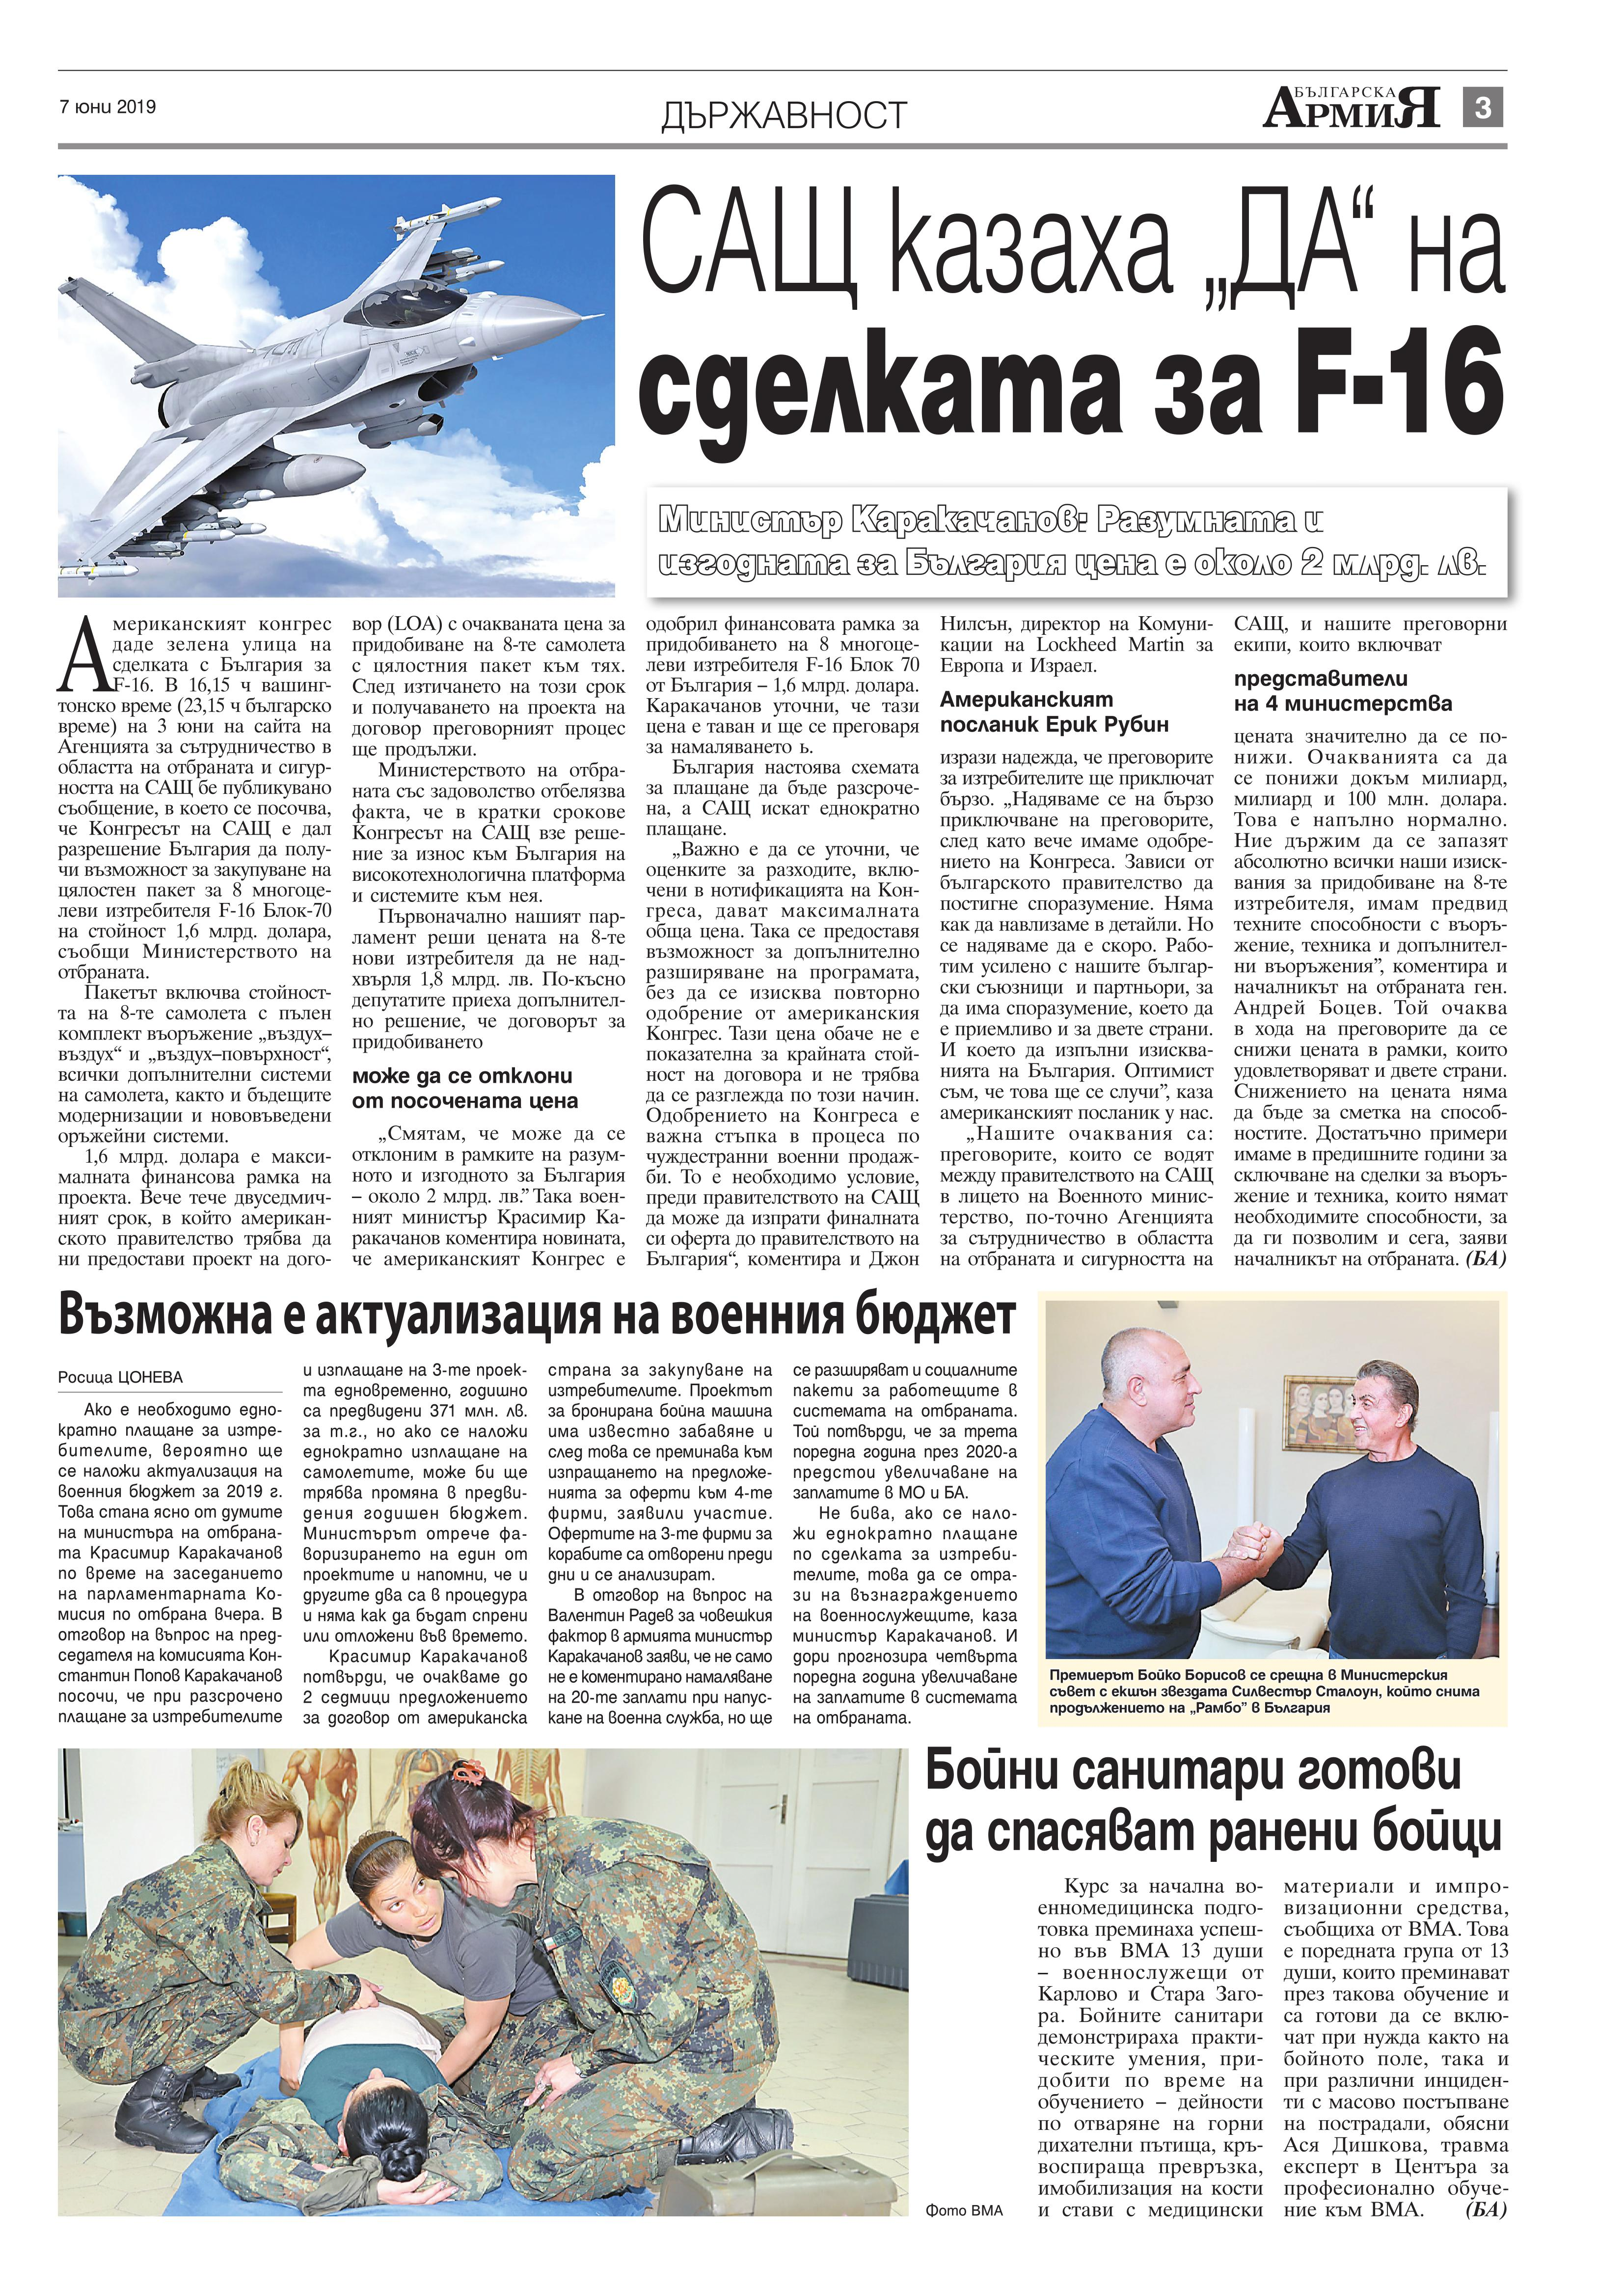 https://www.armymedia.bg/wp-content/uploads/2015/06/03.page1_-95.jpg